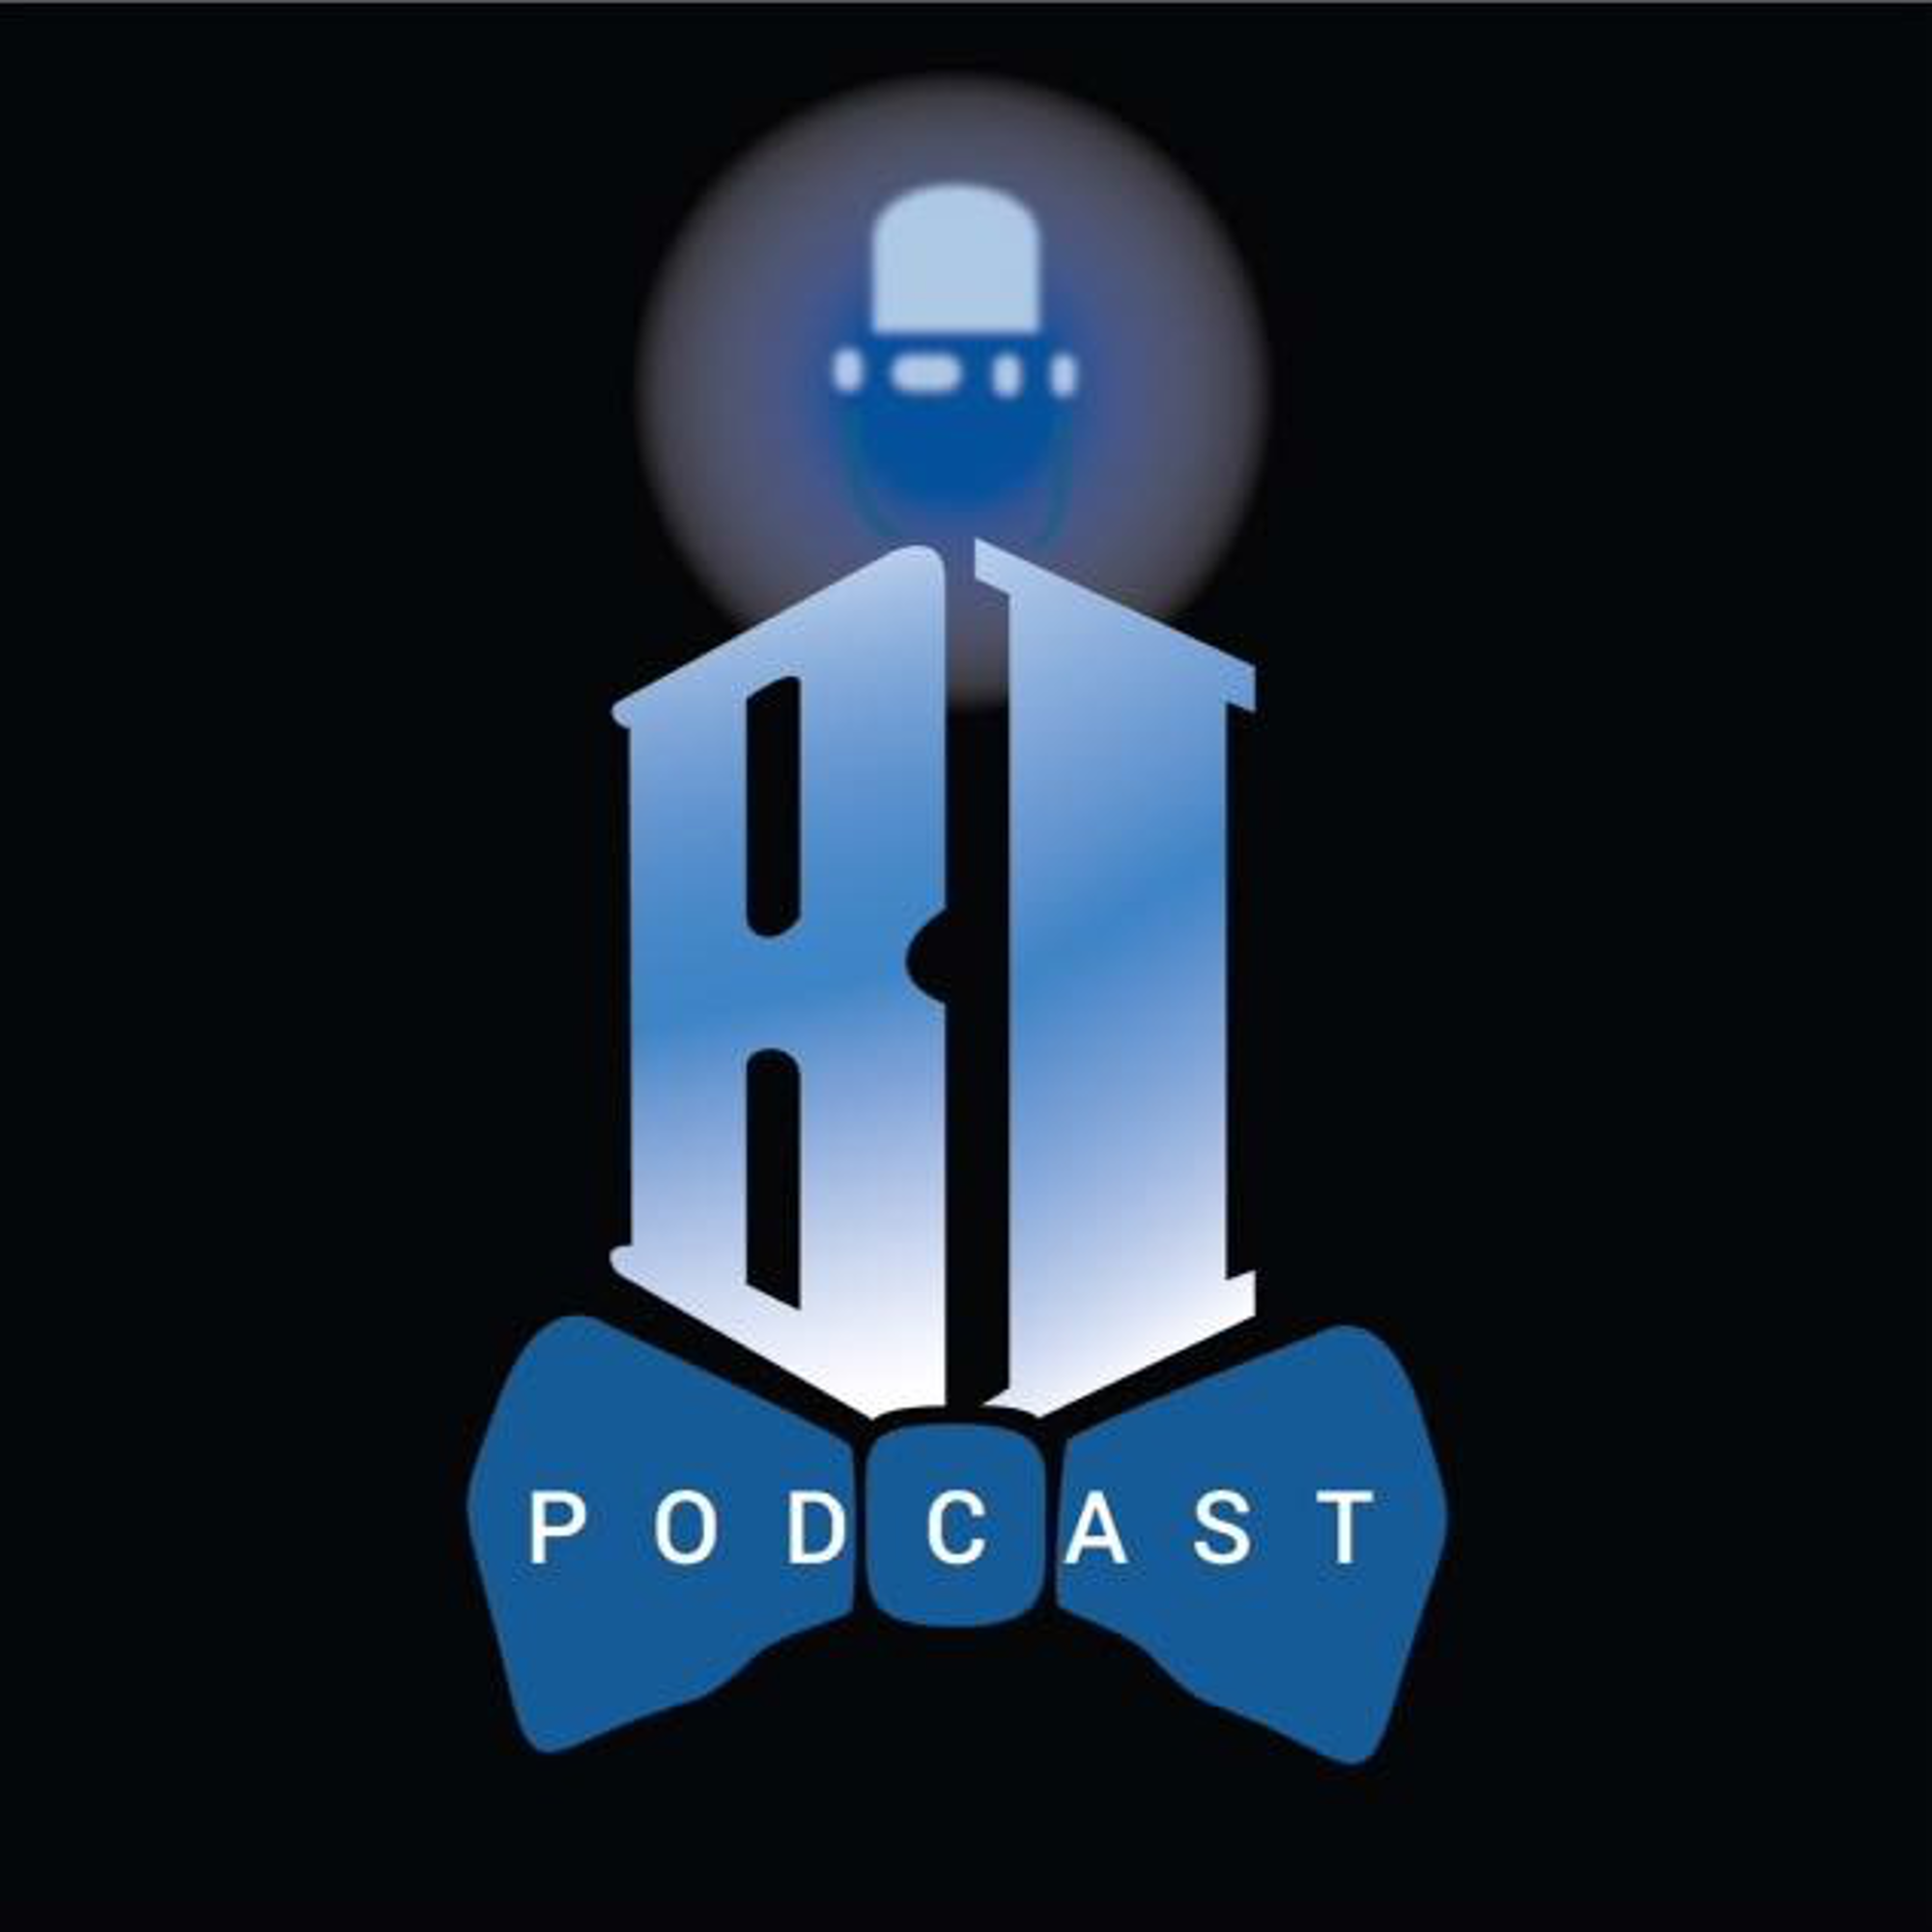 BOTI Podcast